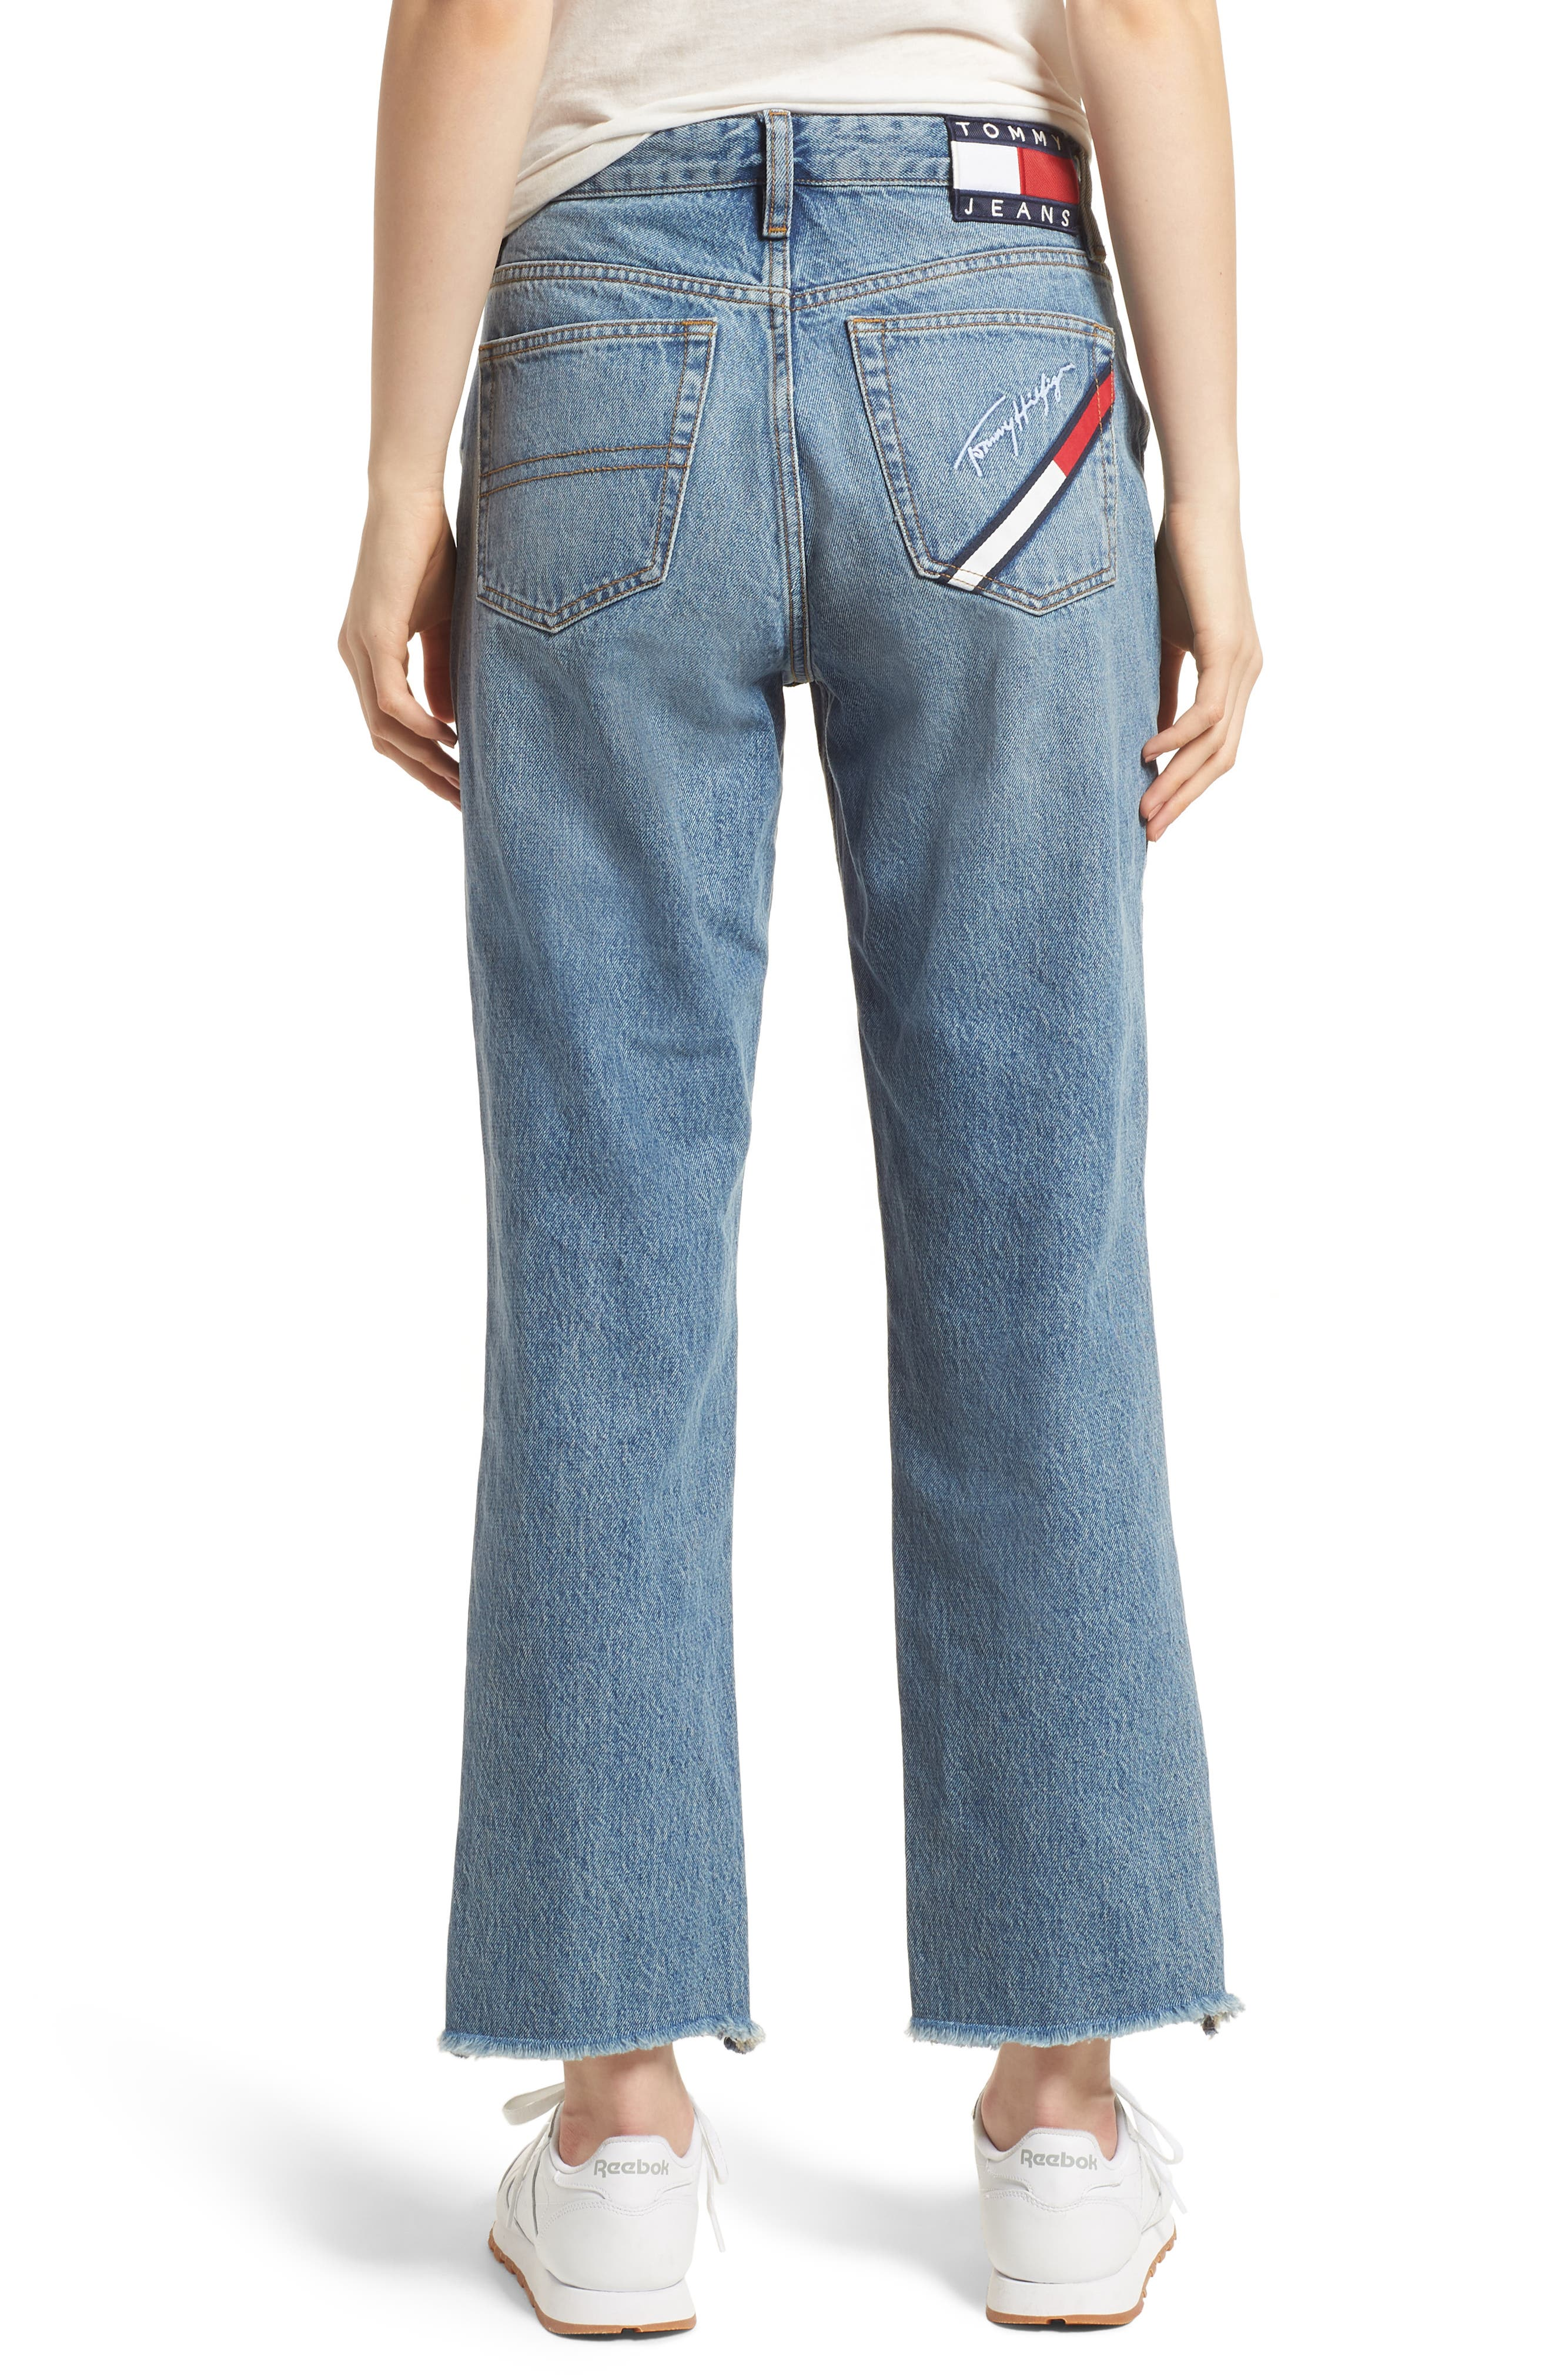 TOMMY JEANS,                             TJW 90s Mom Jeans,                             Alternate thumbnail 2, color,                             401